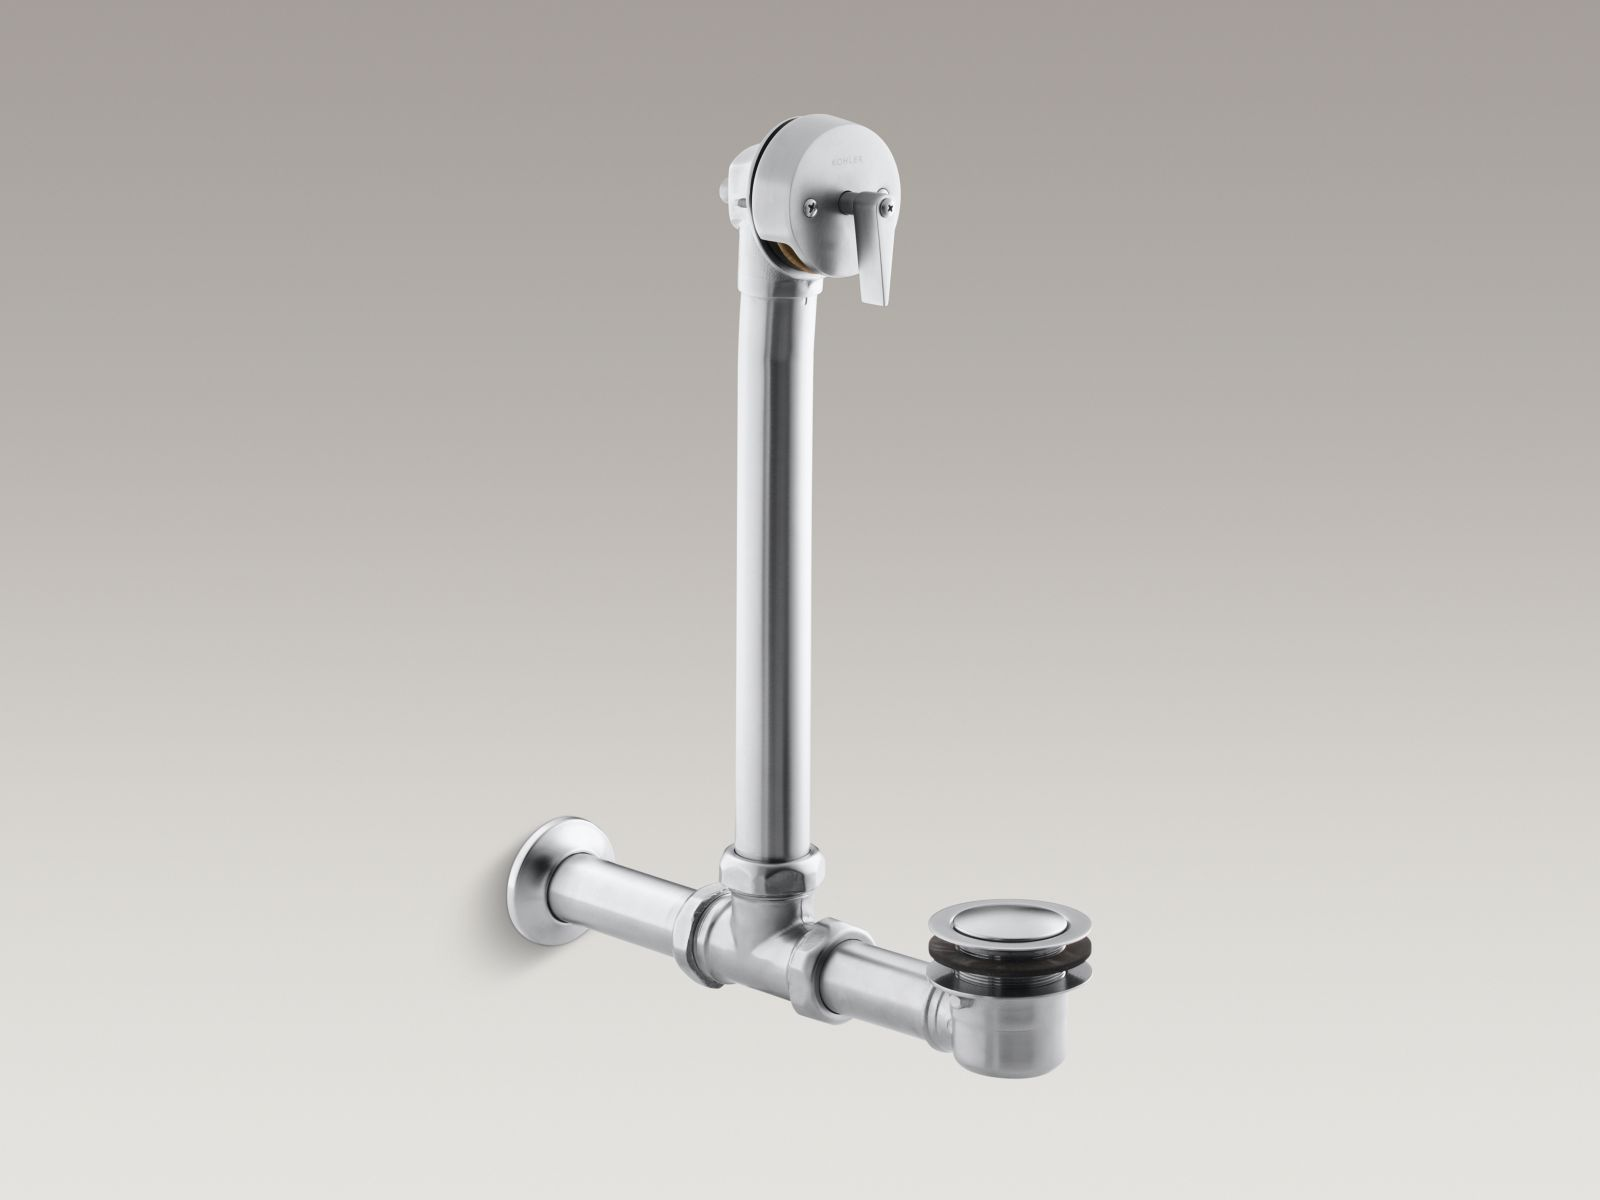 Kohler K-7104-G Iron Works Exposed Bath Drain for Above-The-Floor Installation Brushed Chrome